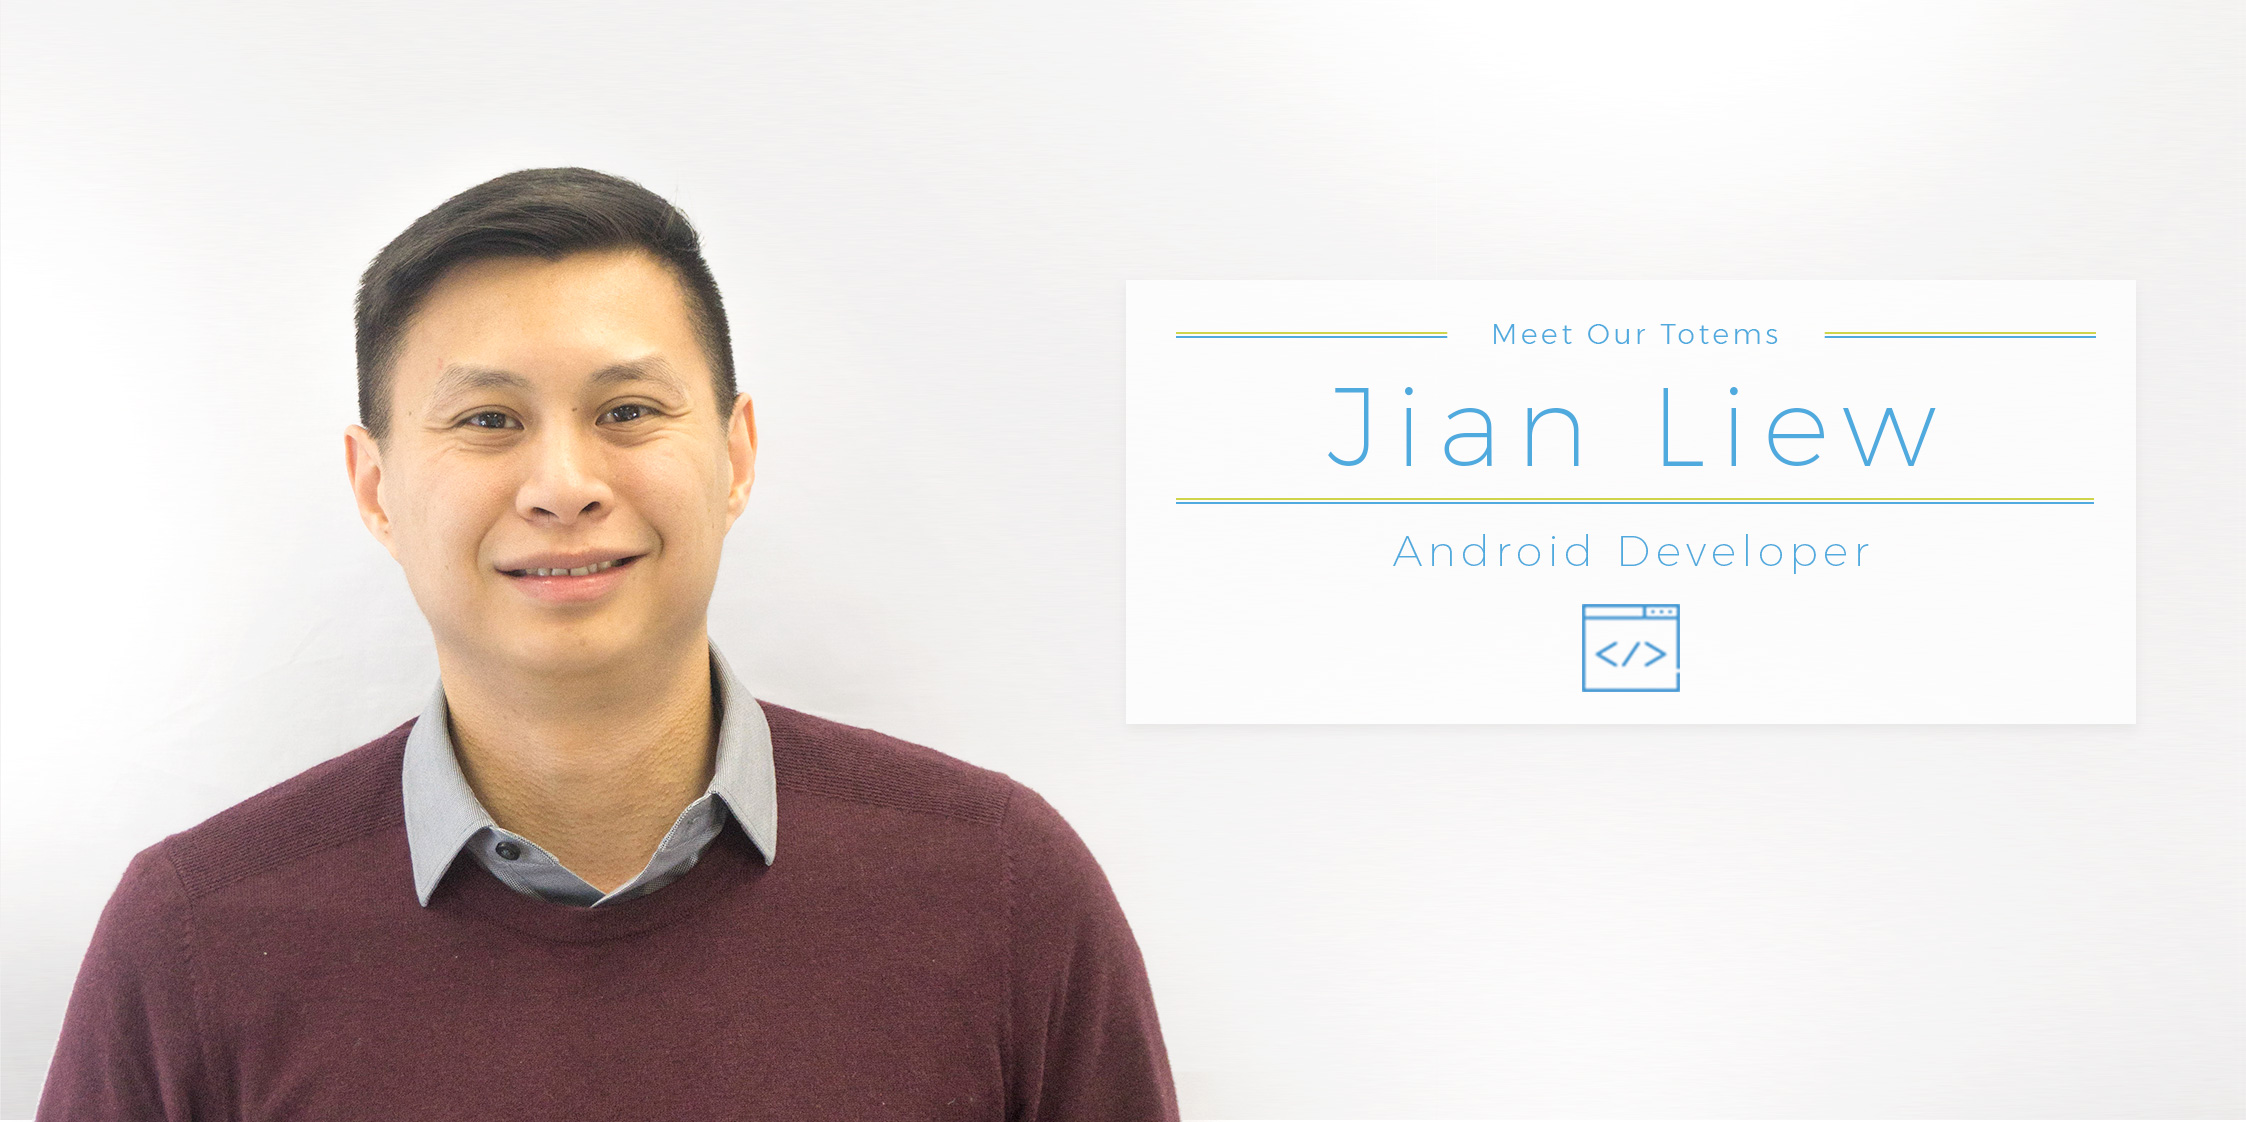 Meet Our Totems – Jian